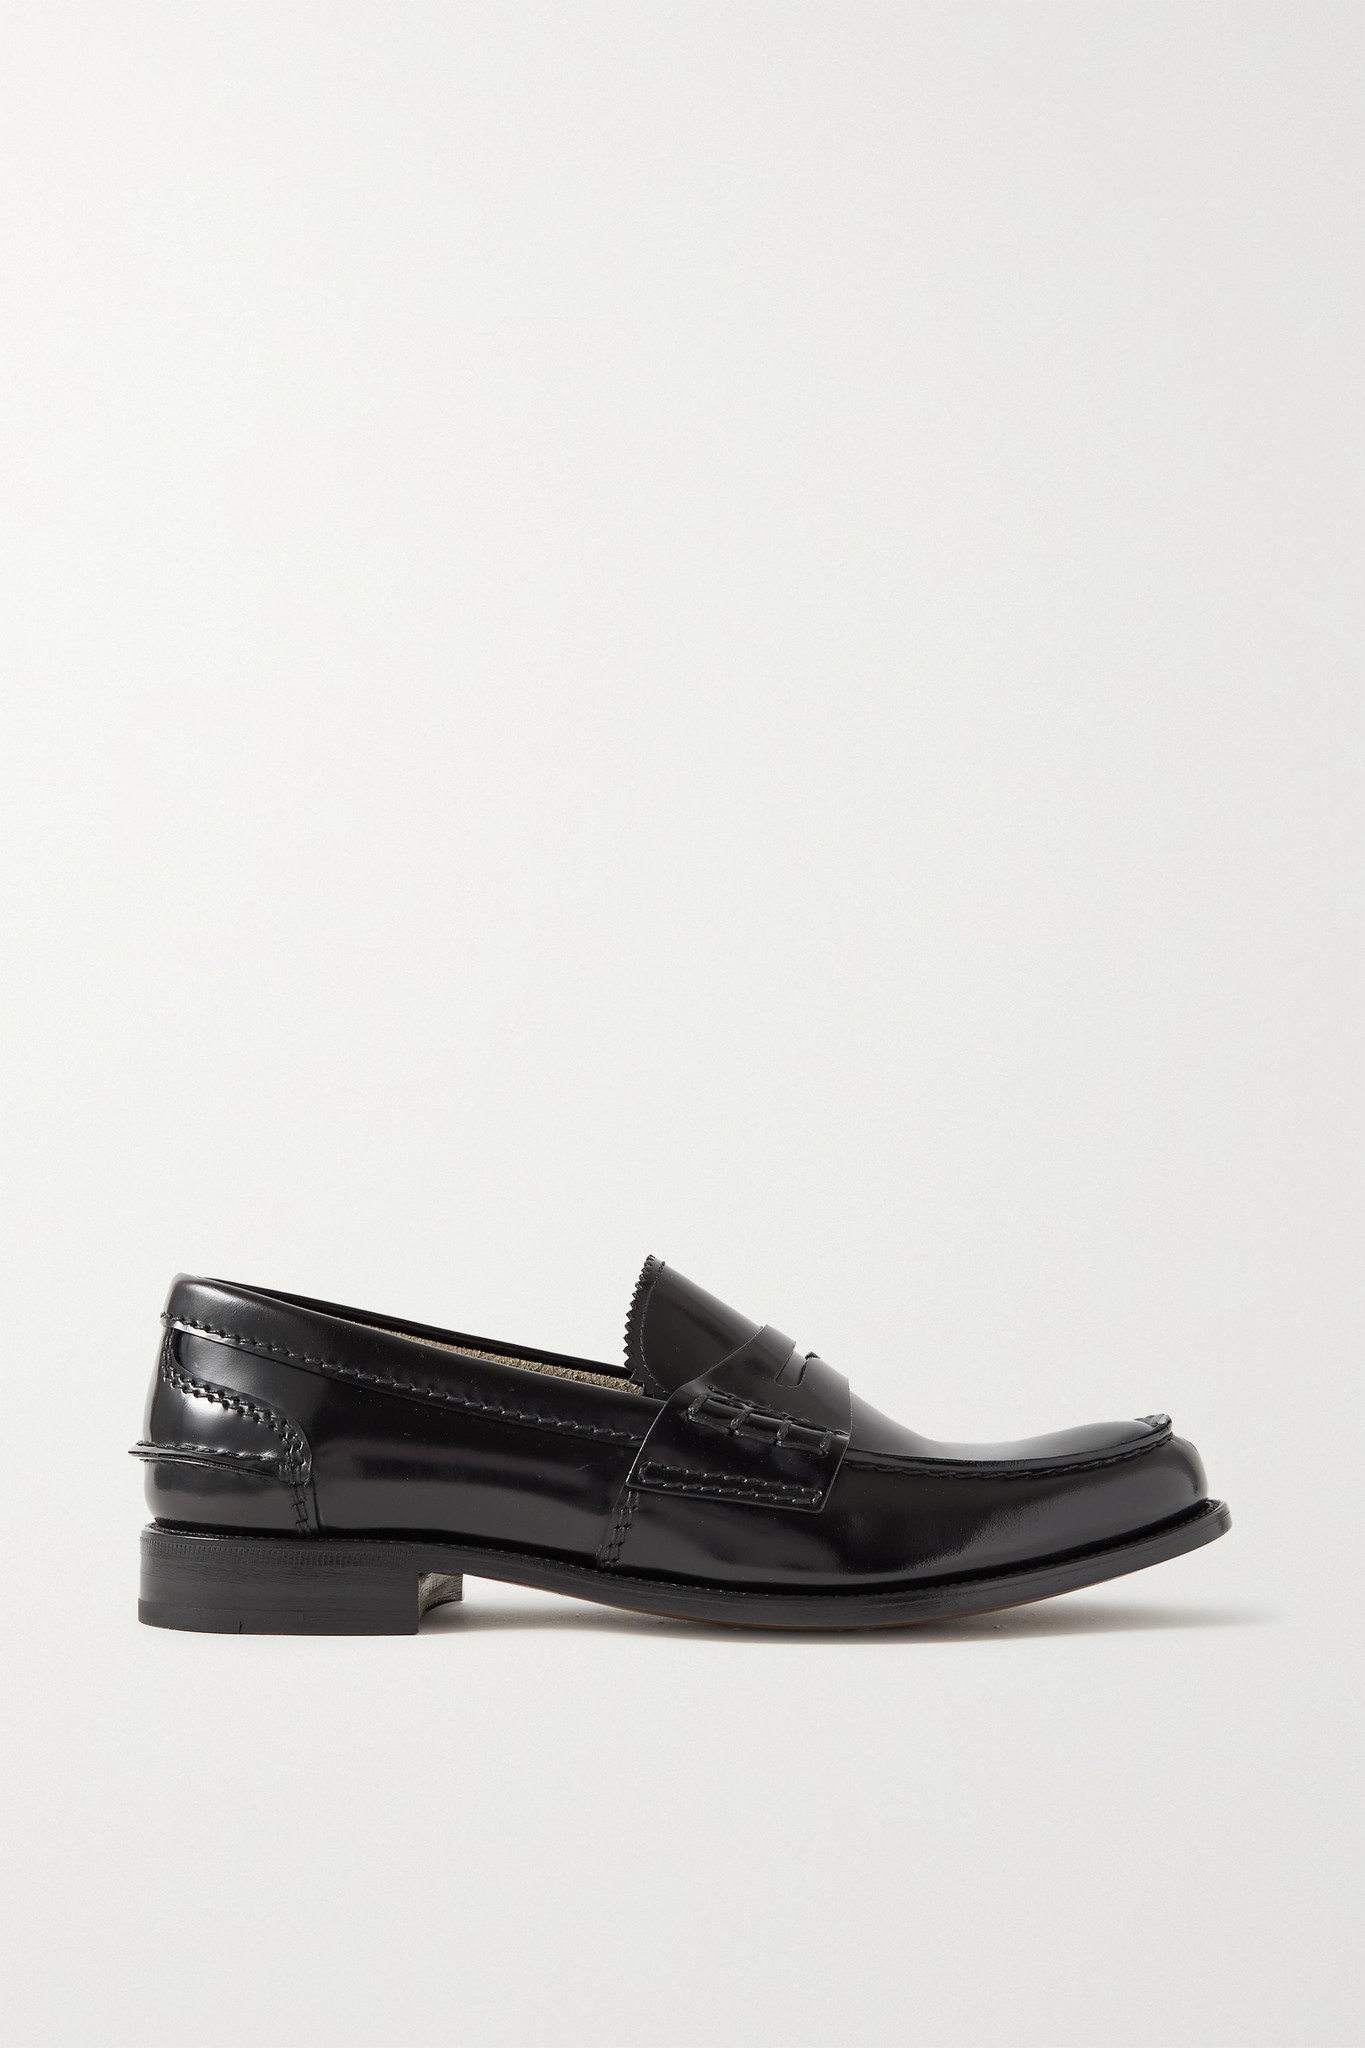 CHURCH'S - Pembrey Glossed-leather Loafers - Black - IT37